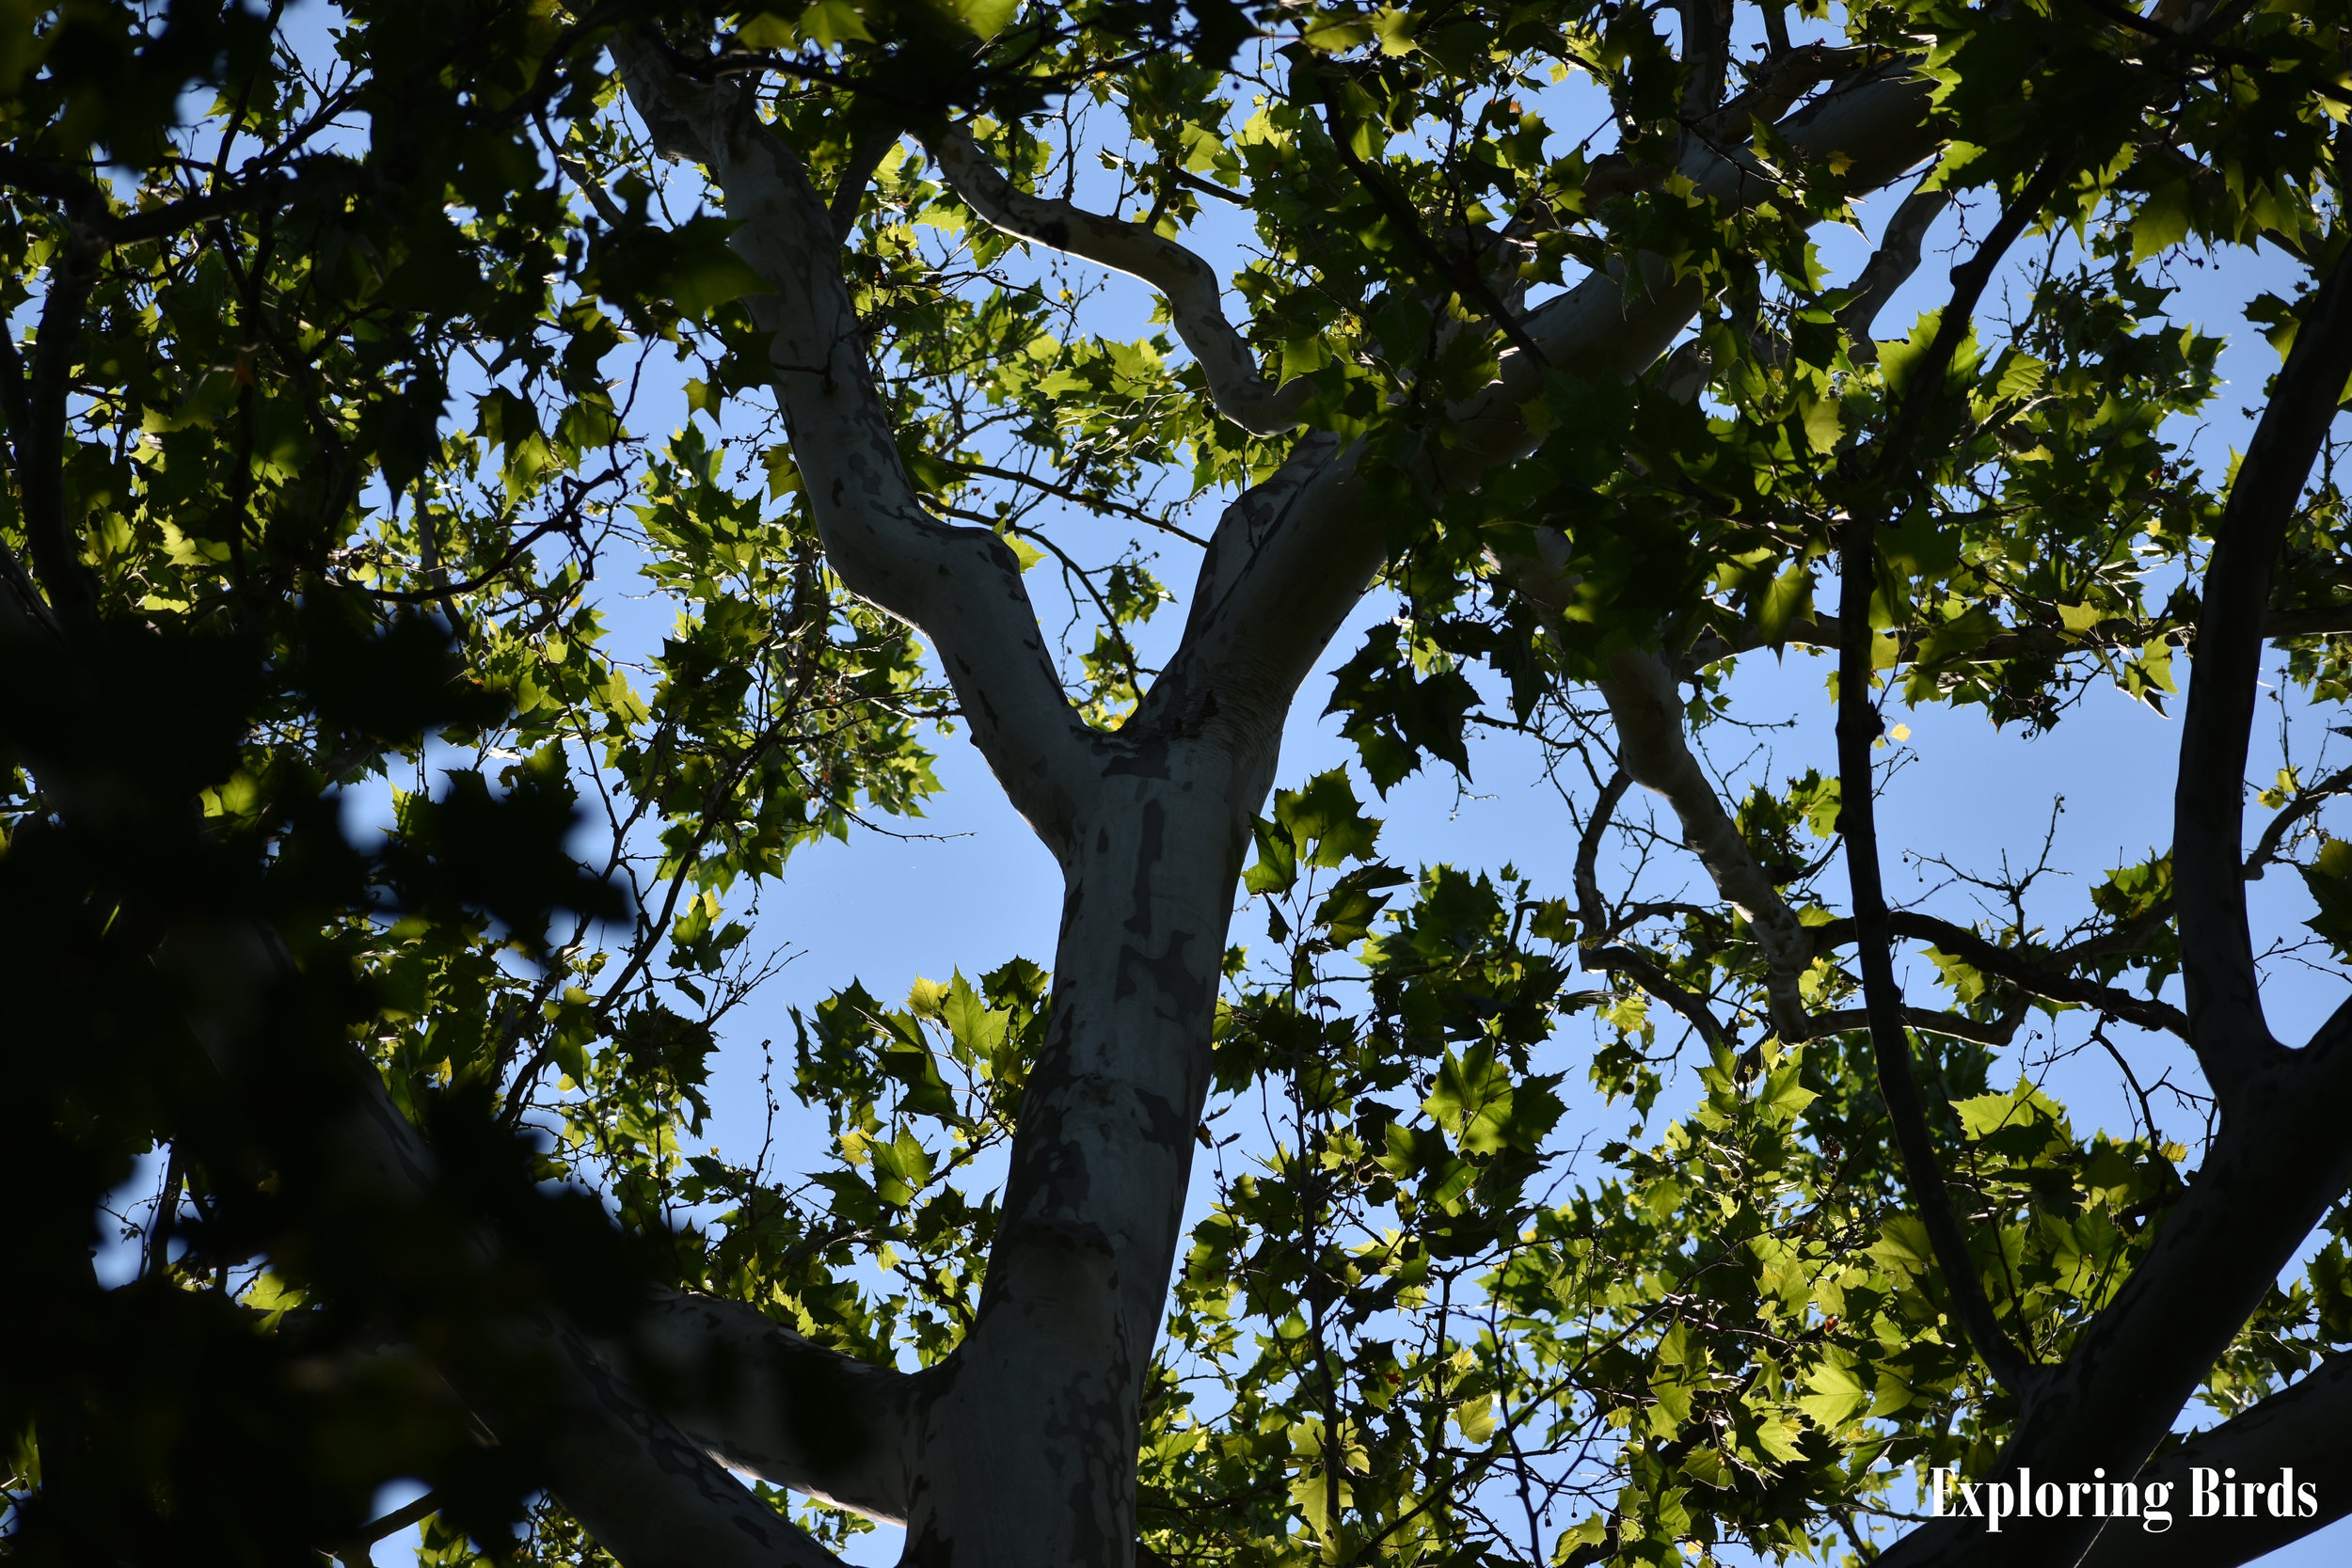 American Sycamore is often used for nesting by Baltimore Oriole